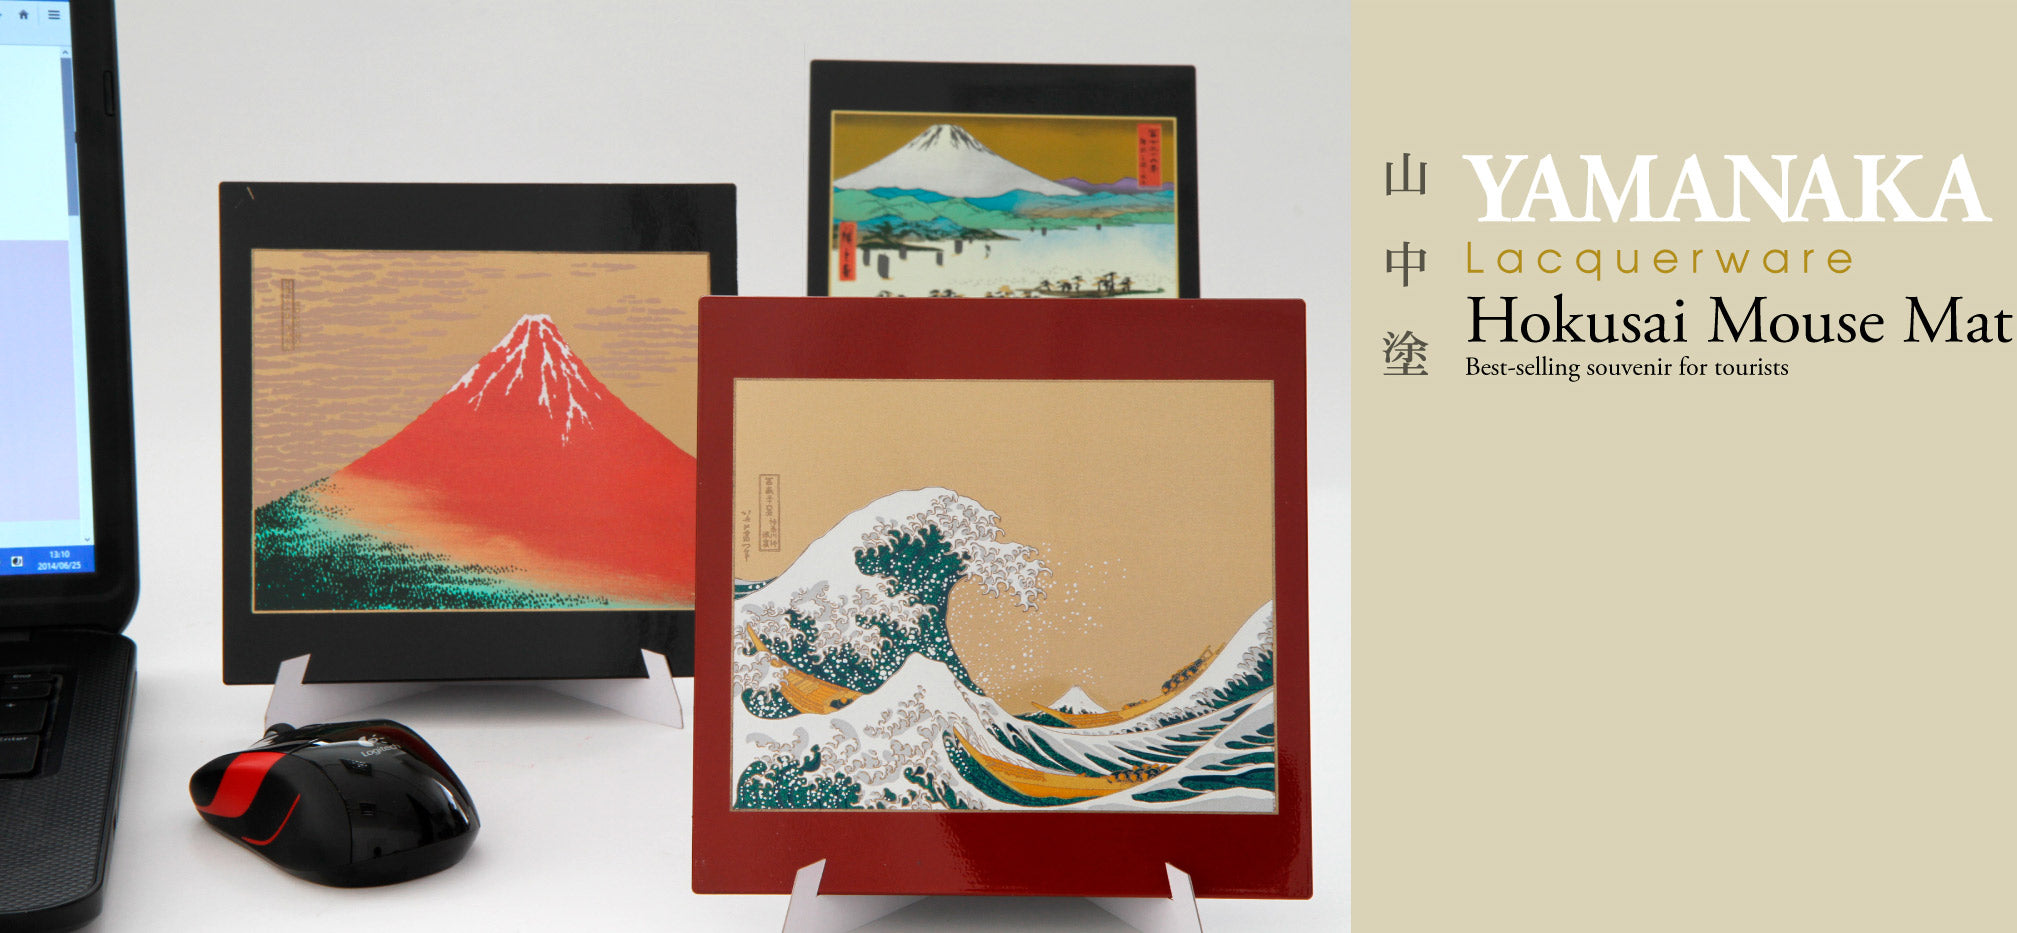 YAMANAKA Lacquerware Hokusai Mouse Mat Best-selling souvenir for tourists 山中塗